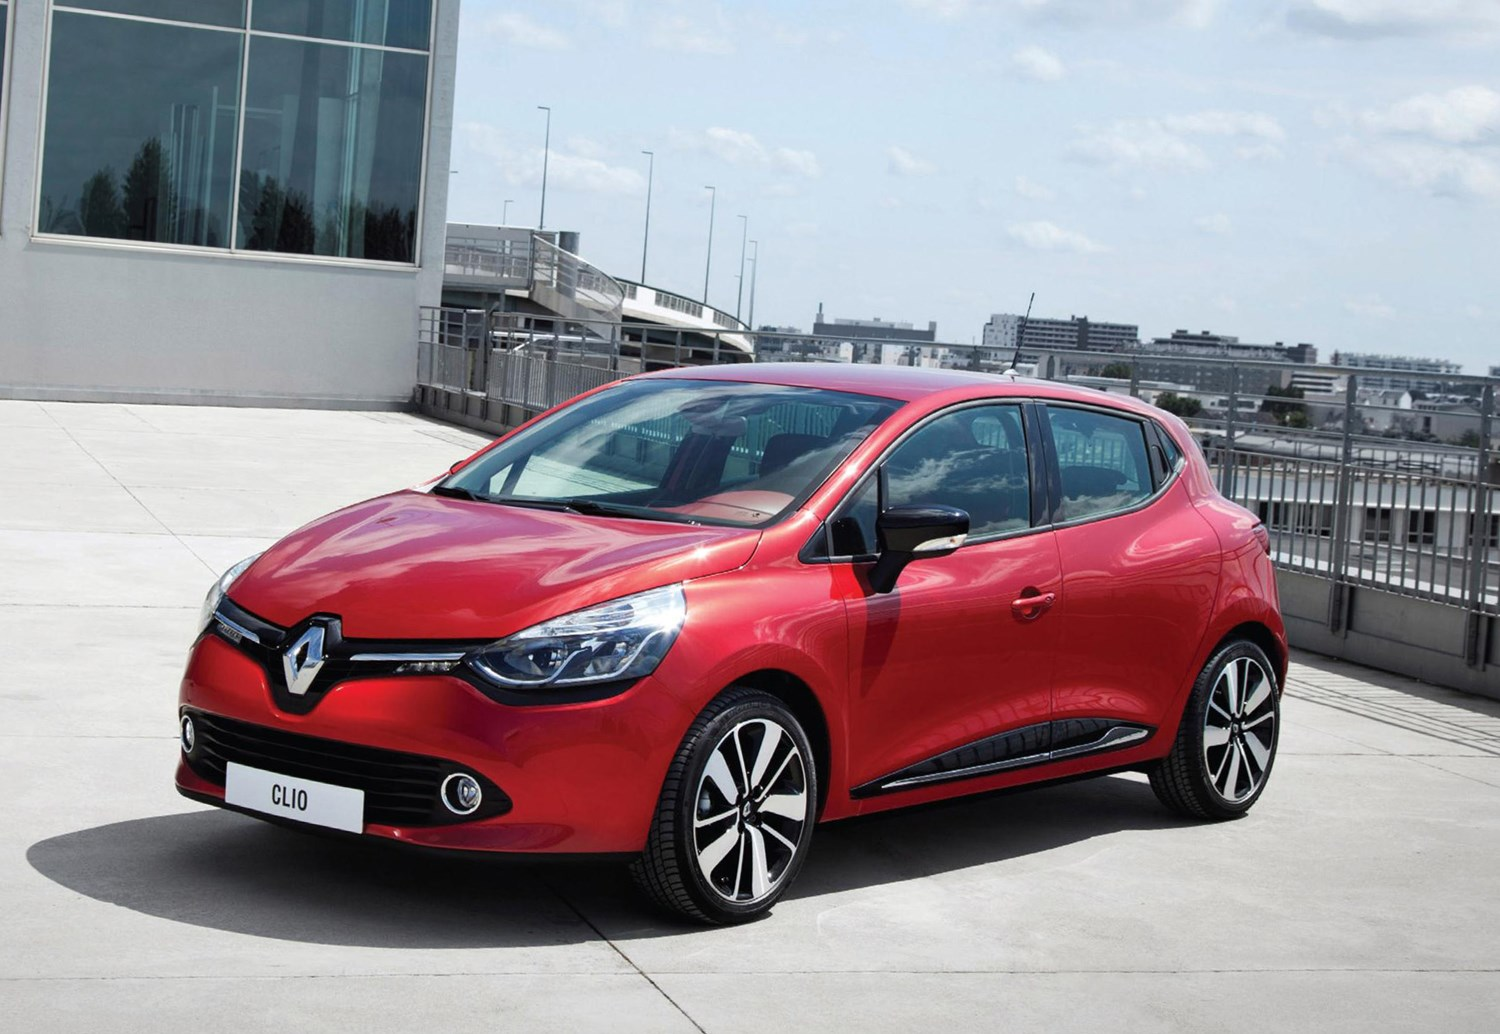 Renault Clio Hatchback Review (2012 - ) | Parkers